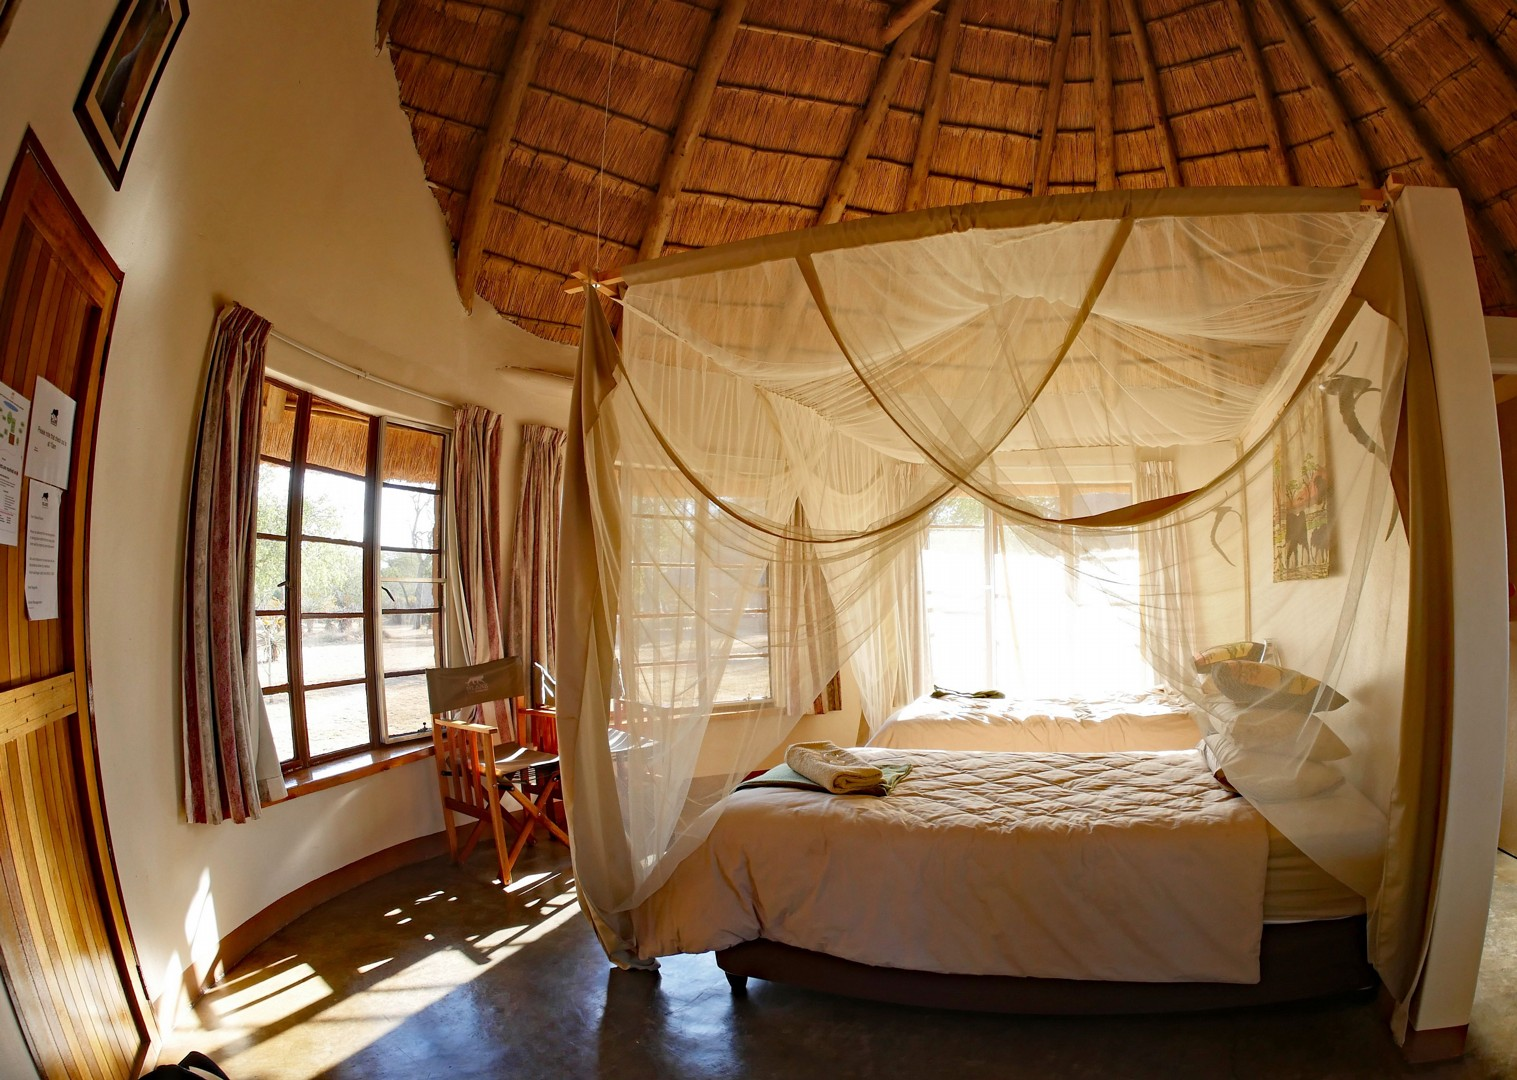 tented-camp-africa-swaziland-singletrack-and-sundowners-guided-mountain-bike-holiday.jpg - Swaziland - Singletrack and Sundowners - Guided Mountain Bike Holiday - Mountain Biking